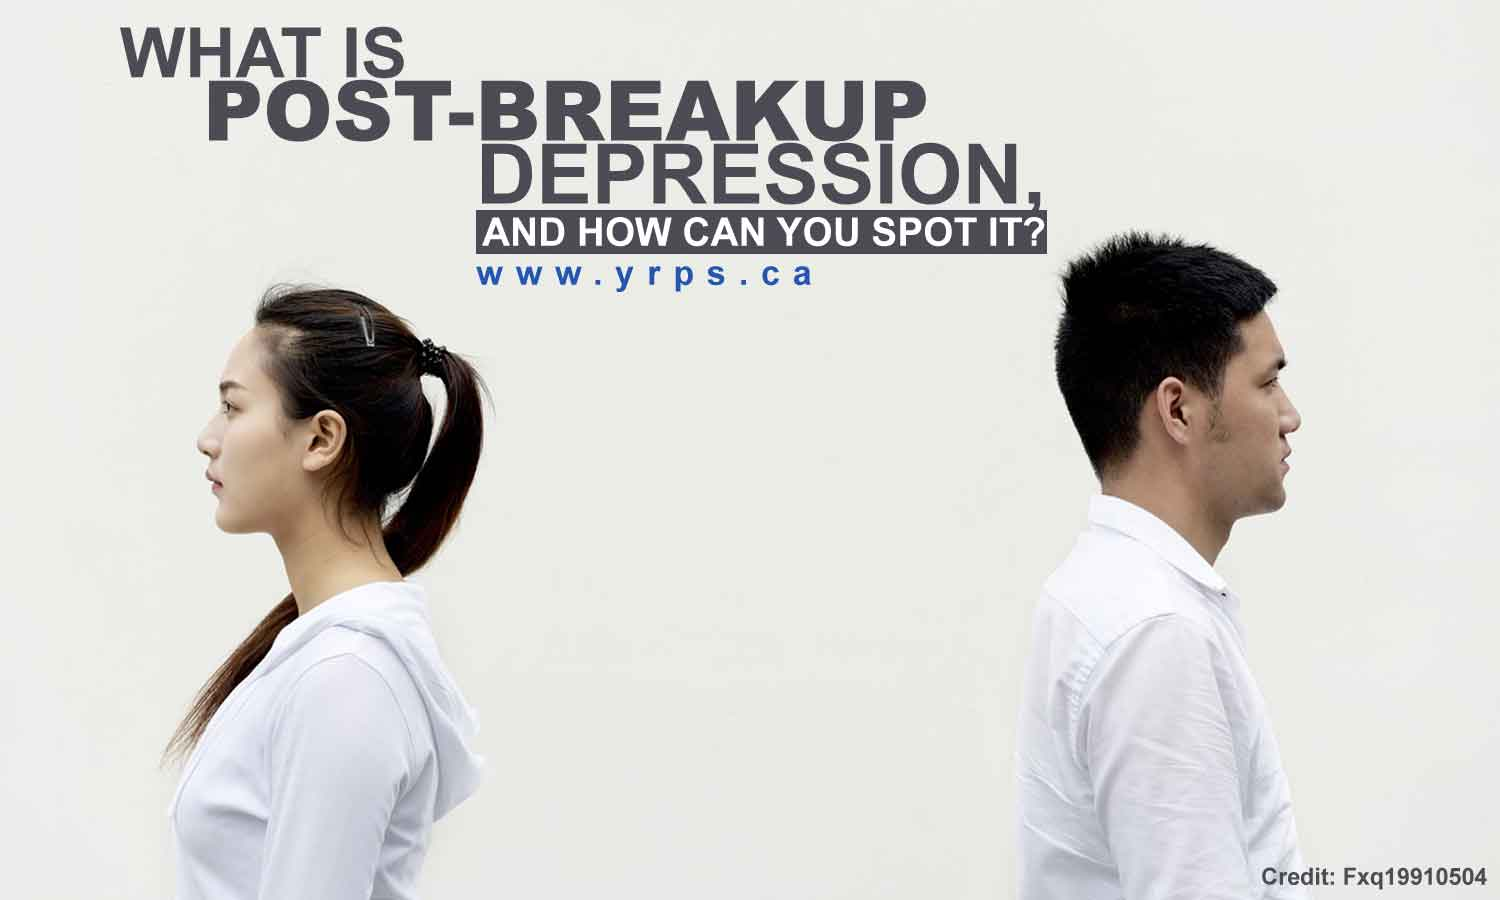 What is post-breakup depression, and how can you spot it?